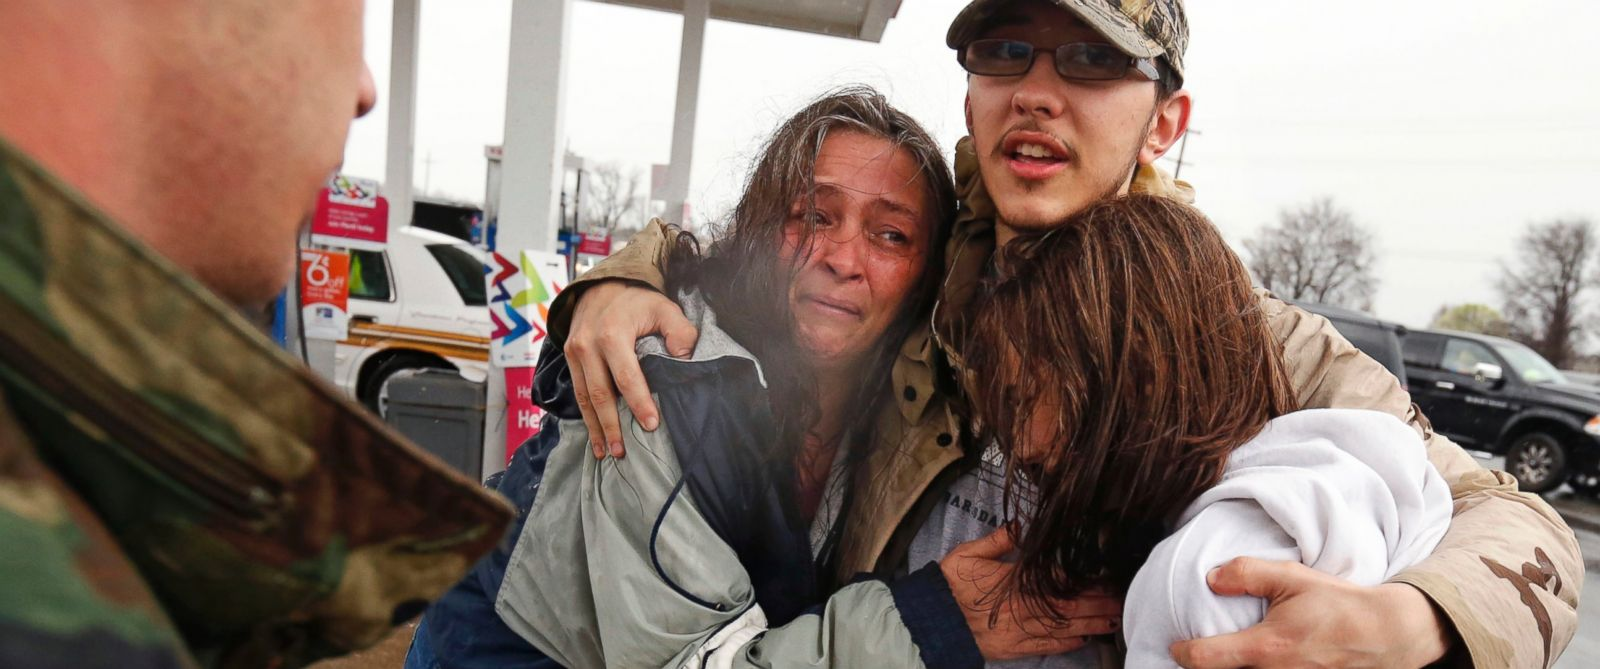 PHOTO: Dacia Winters, left, embraces Ryan Ficca, center, and Stormy Winters after they were evacuated in a Louisiana National Guard high water vehicle from rising floodwaters in Bossier Parish, La., March 10, 2016.